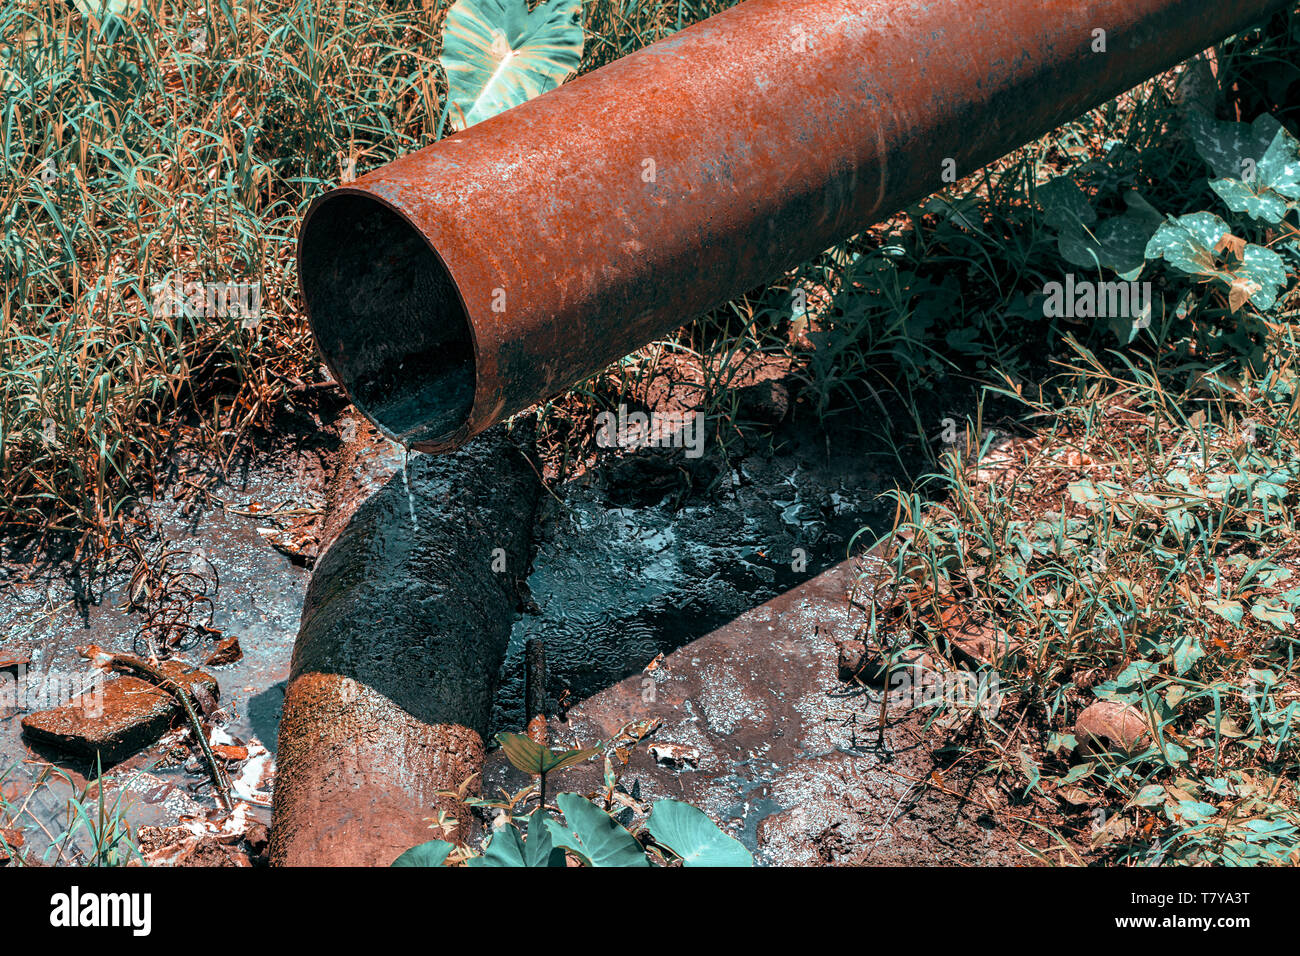 A rusty iron pipe pouring dirty water into a puddle - Stock Image